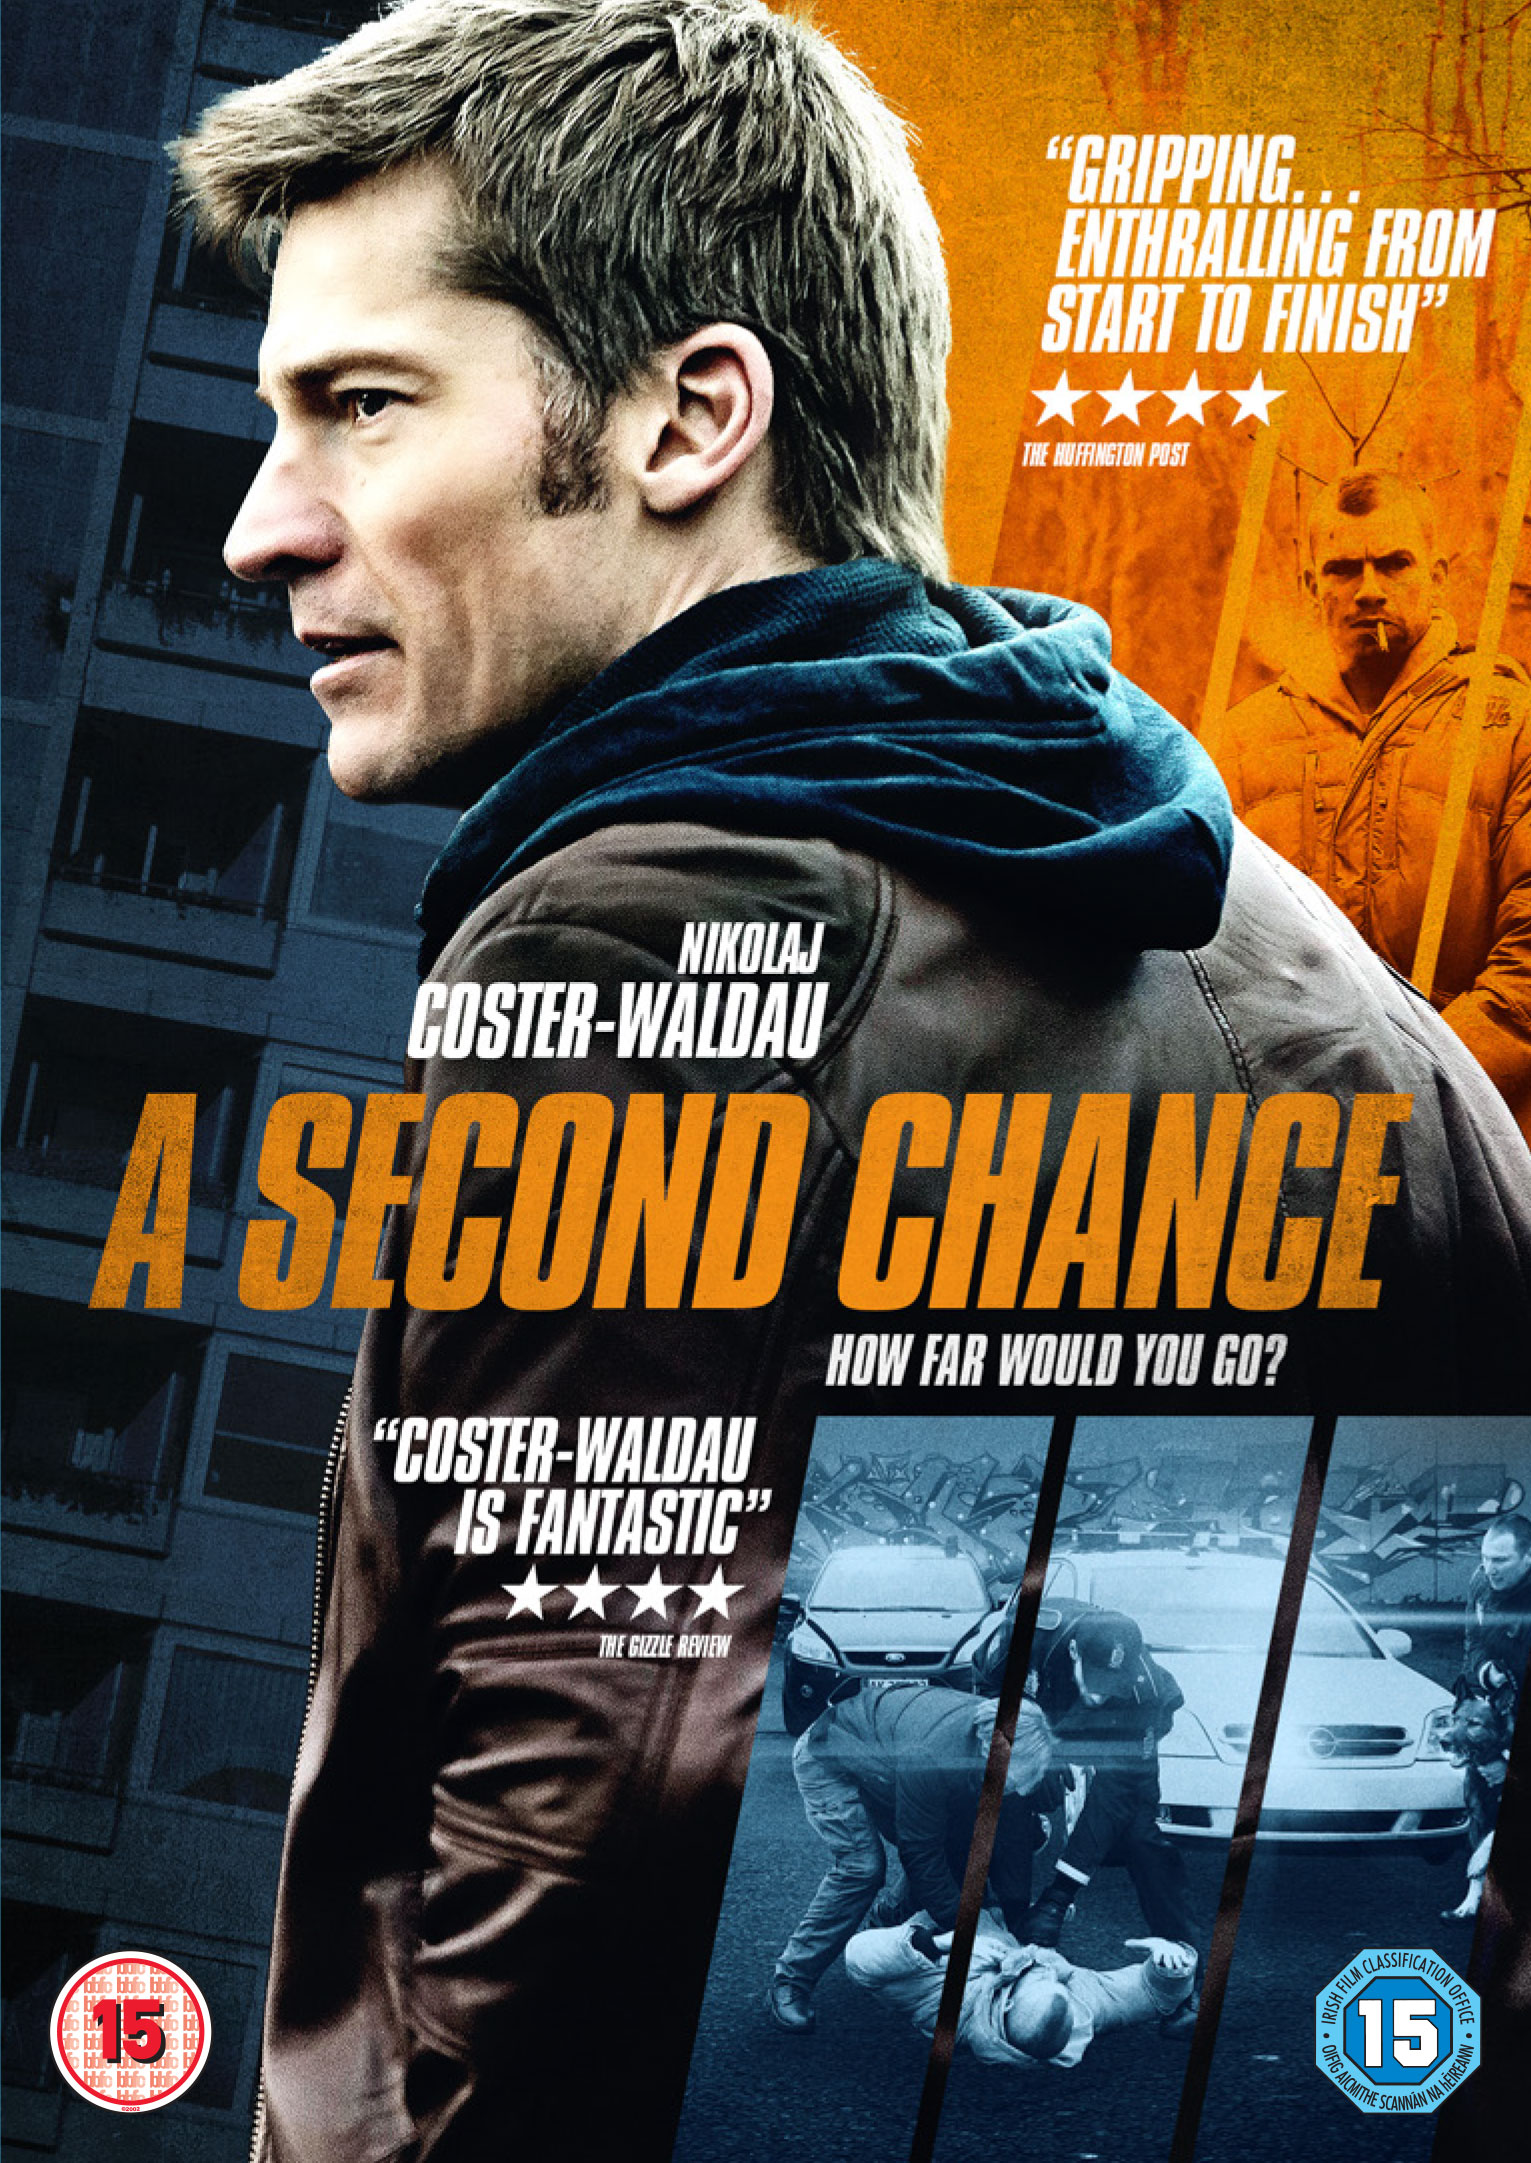 A Second Chance. Film Review | The British Fantasy Society